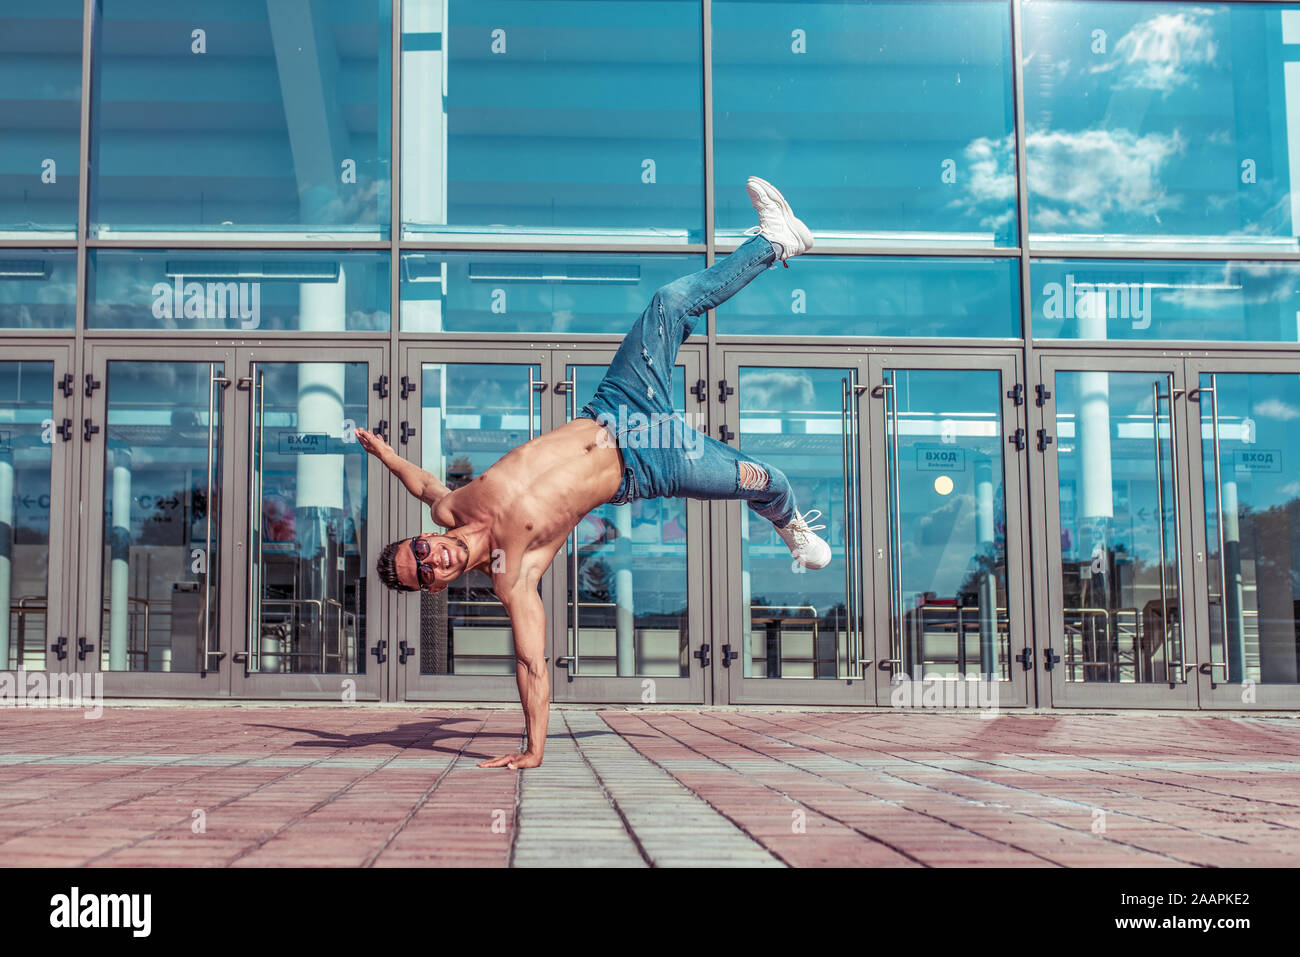 Handstand in jump, young active dancer, trained tanned torso, sport man,  city, pose break dancer, hip hop movement, modern dance style, youth Stock  Photo - Alamy